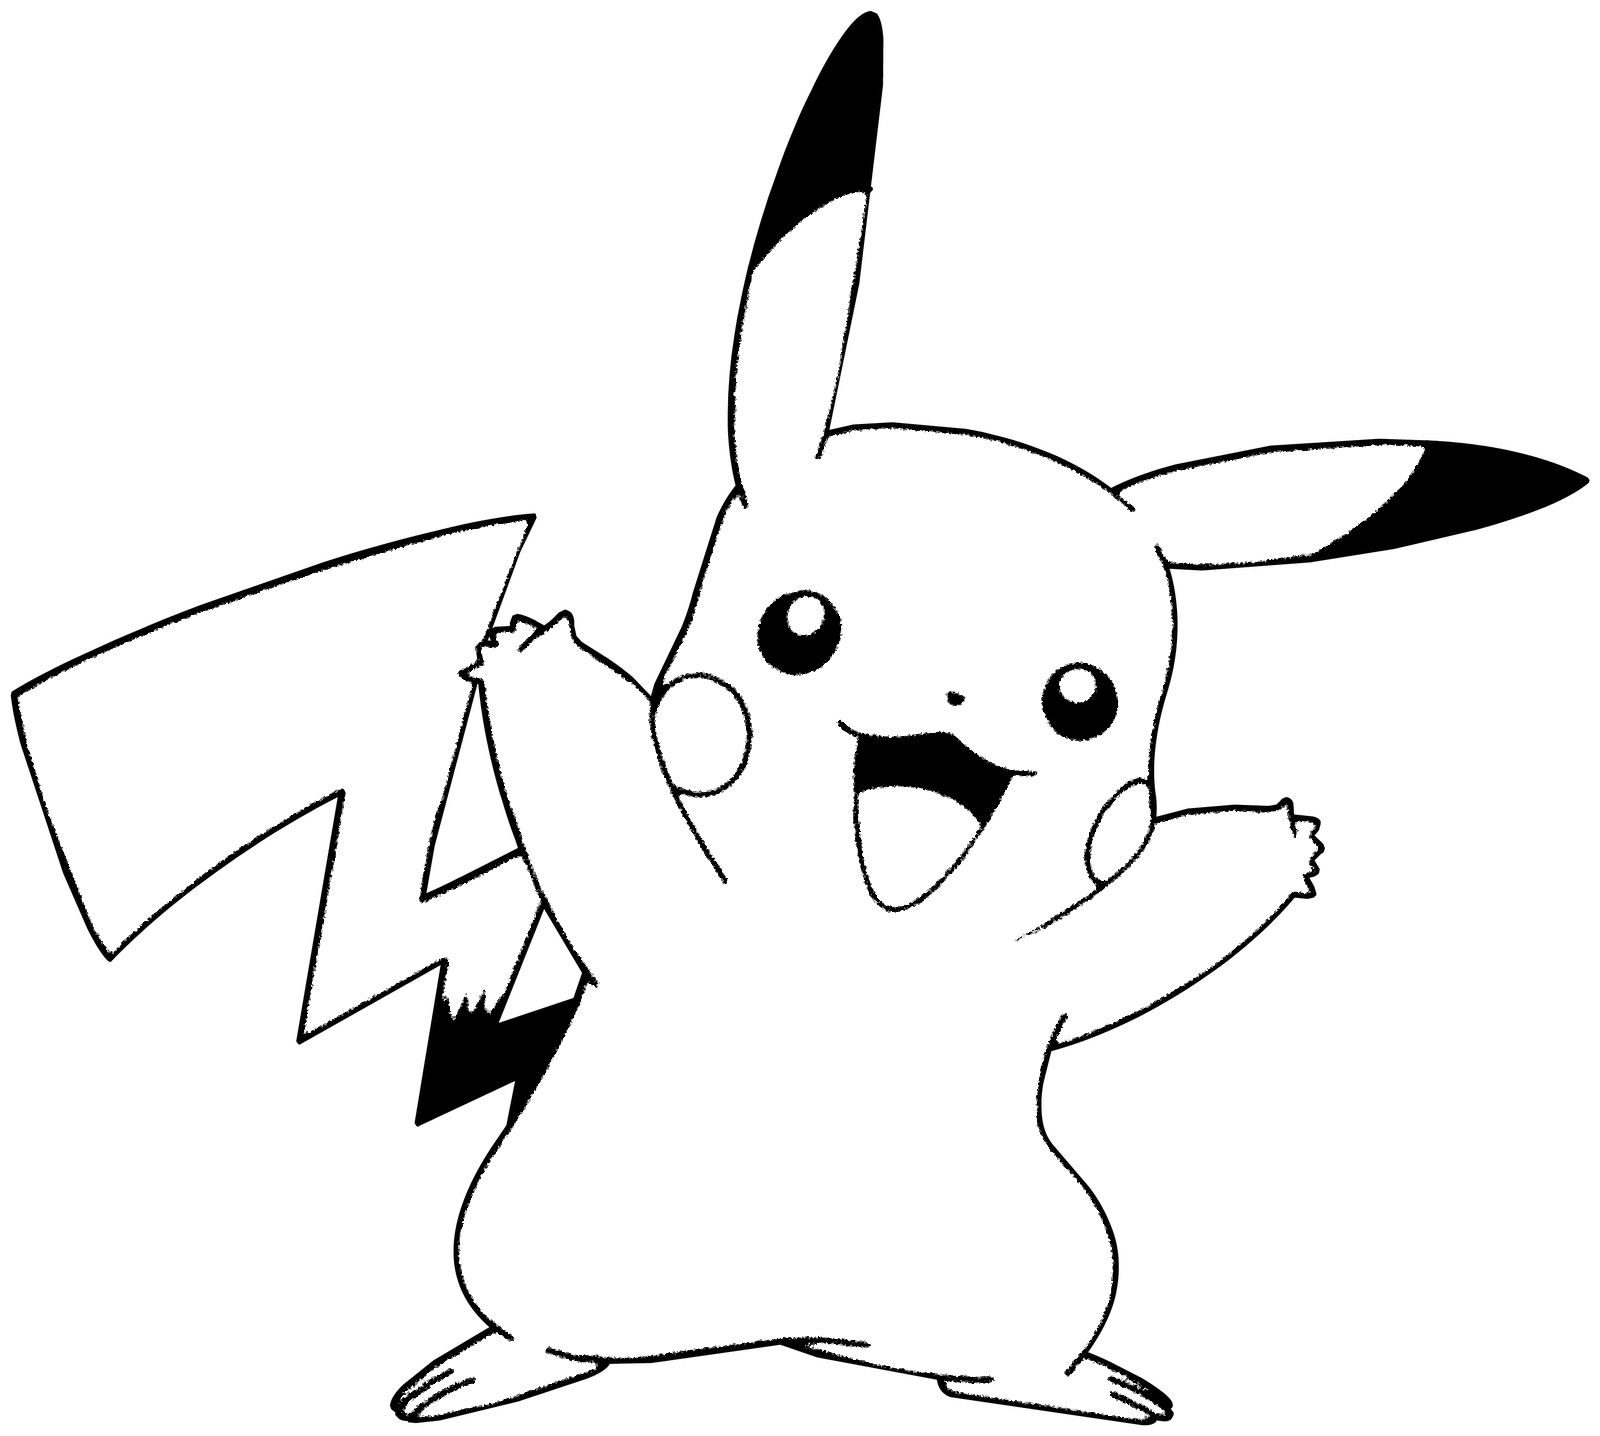 Outline of pikachu